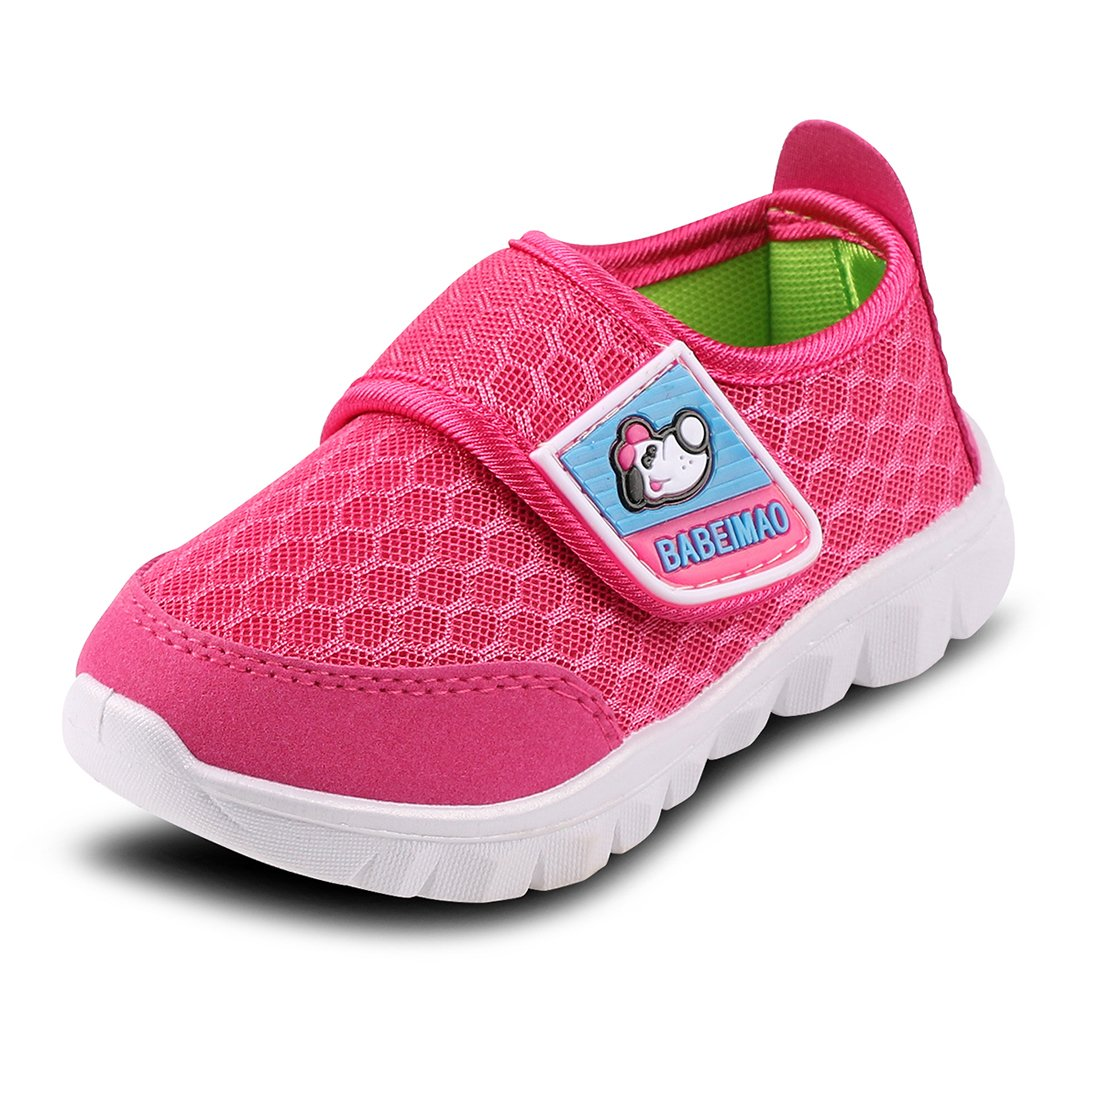 Baby Sneaker Shoes for Girls Boy Kids Breathable Mesh Light Weight Athletic Running Walking Casual Shoes(5 M US Toddler,Pink,20)